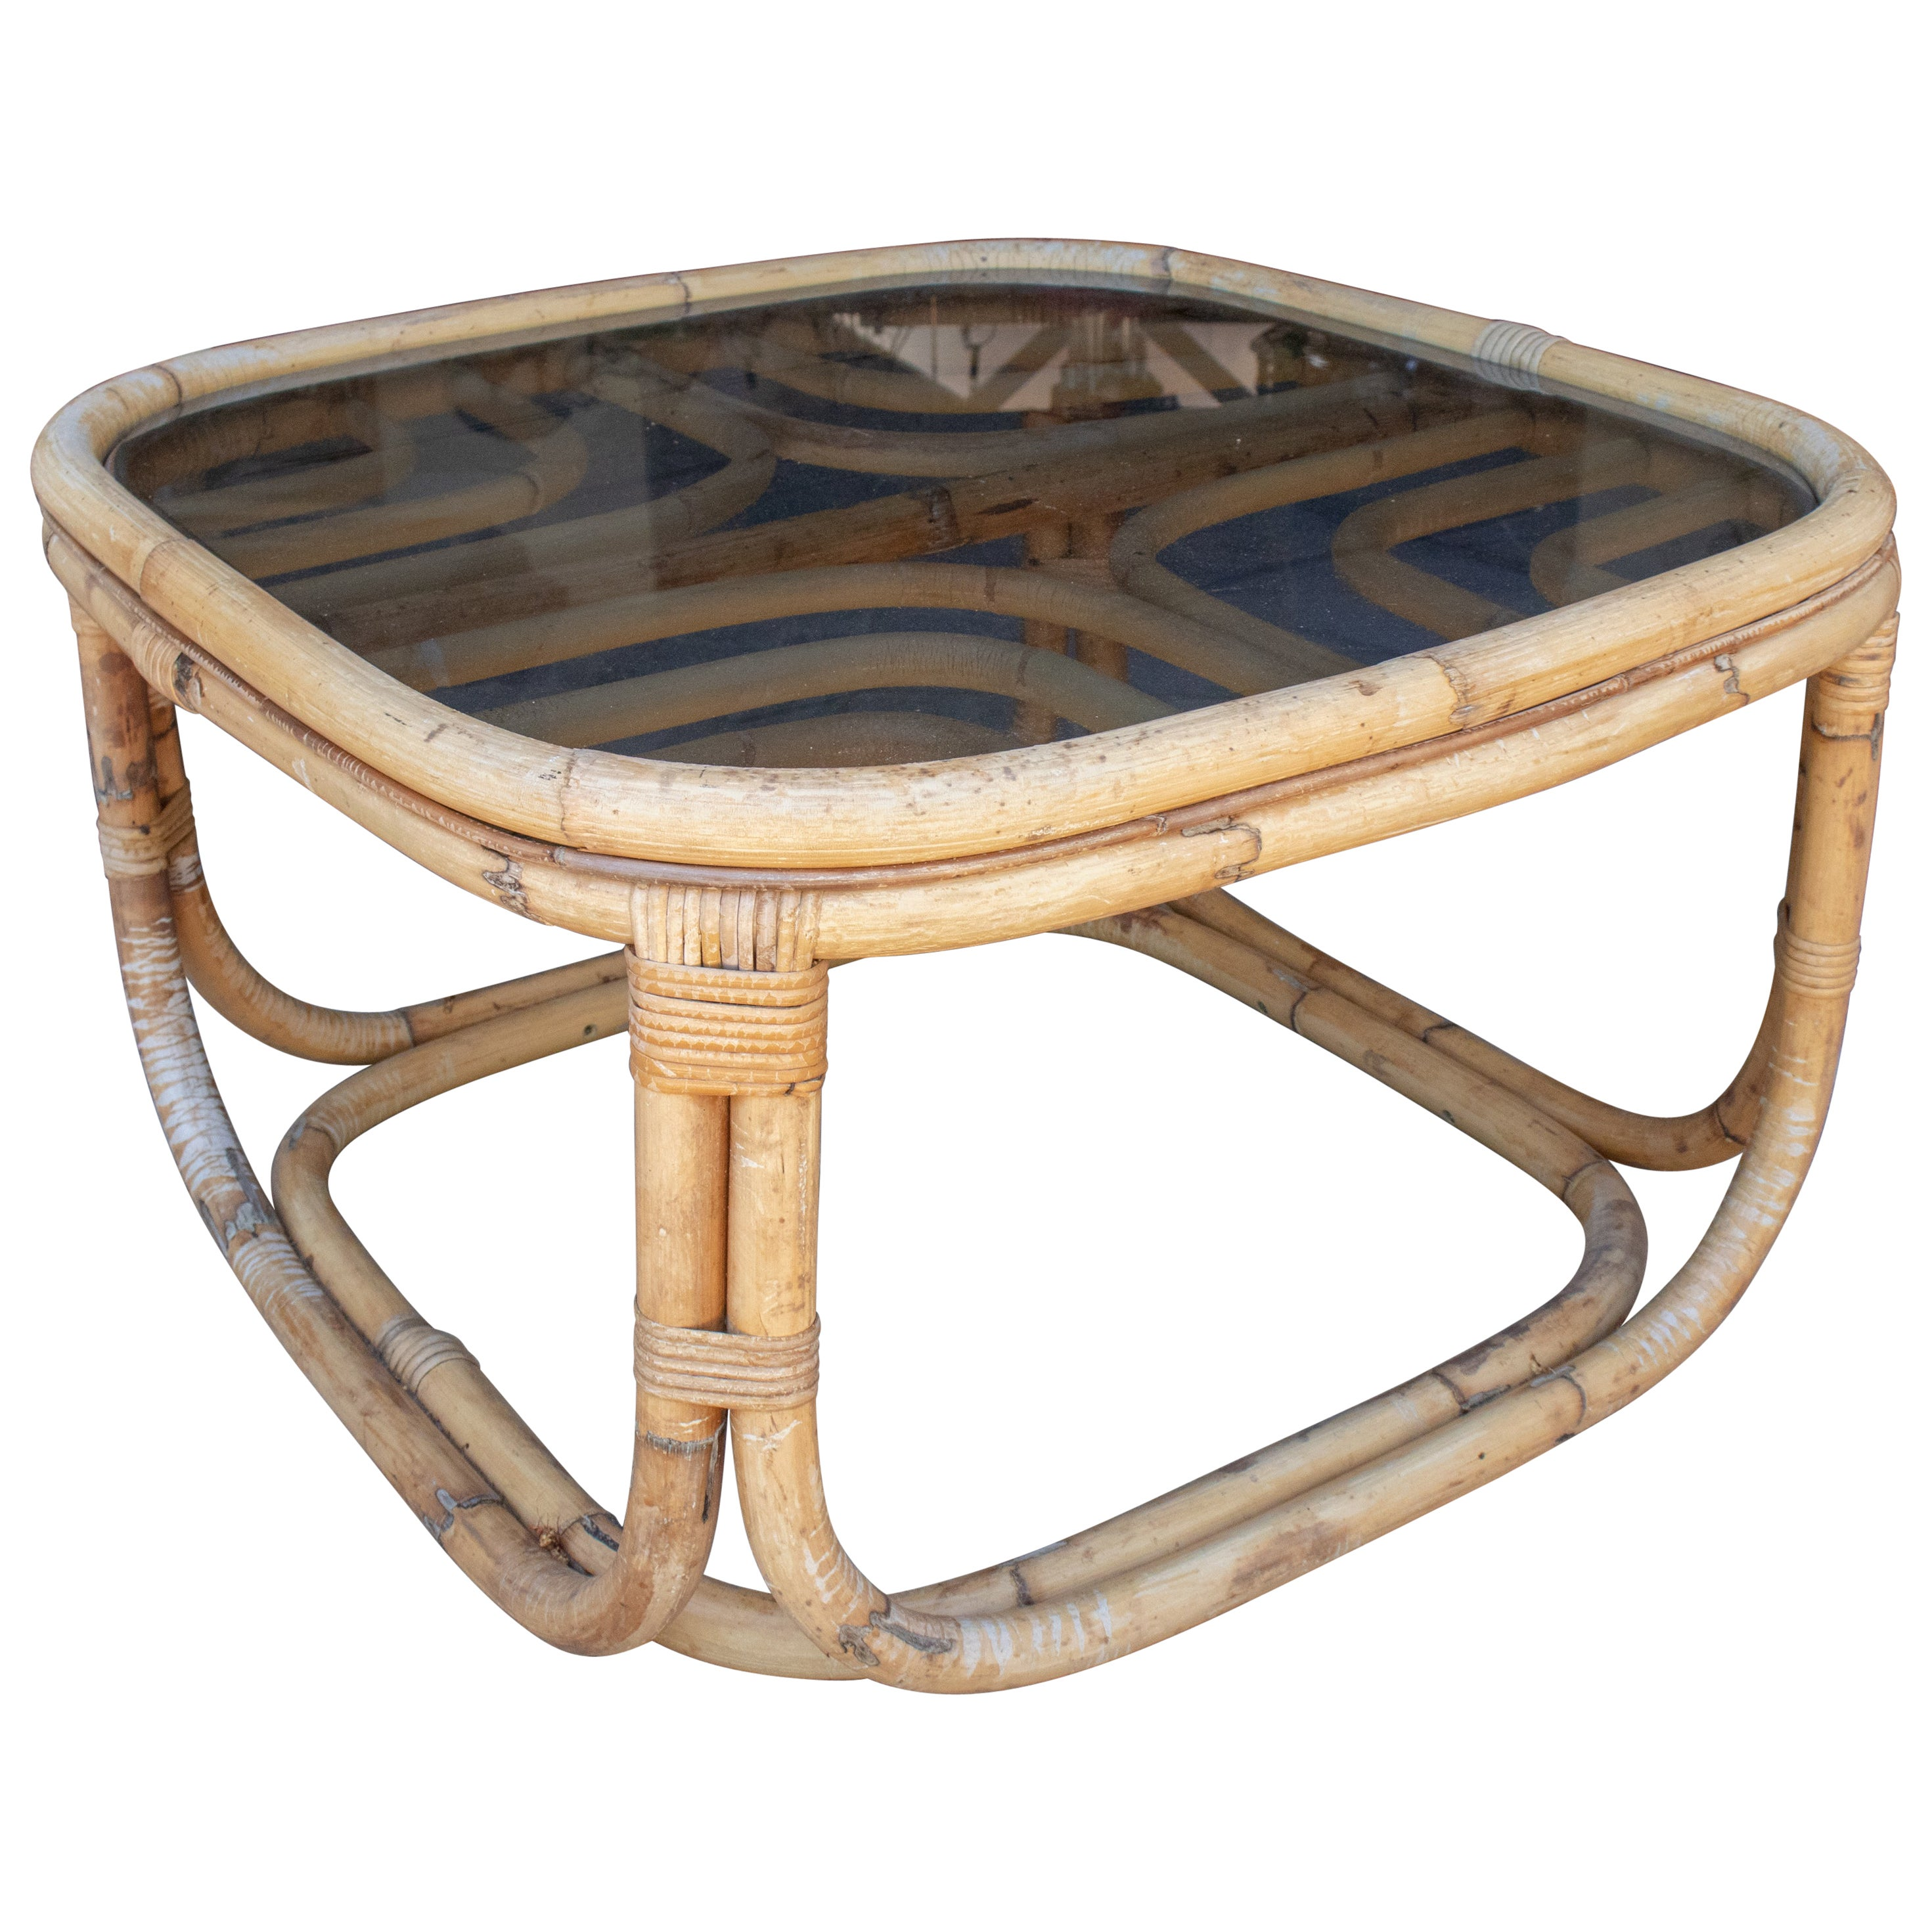 1970s Spanish Bamboo Coffee Table with Smoked Glass Top